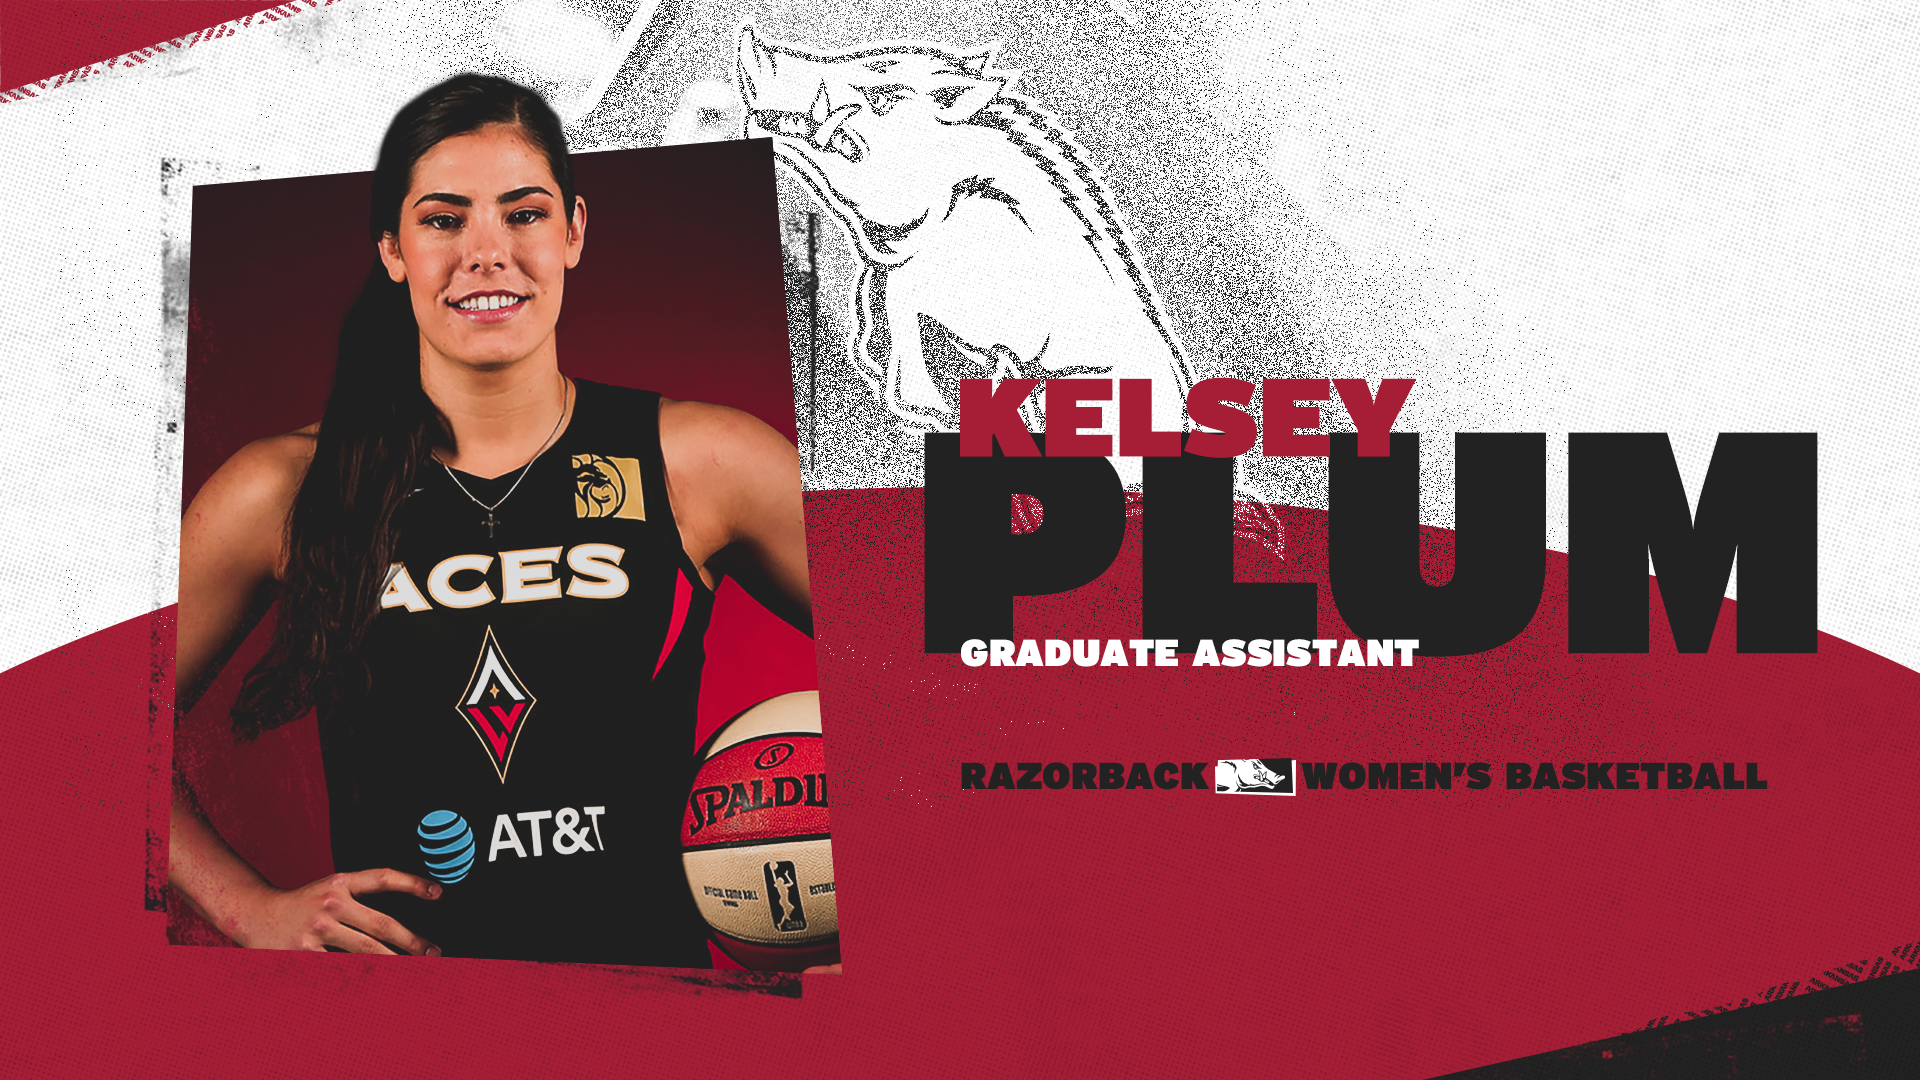 Neighbors Adds Plum To Staff as Graduate Assistant